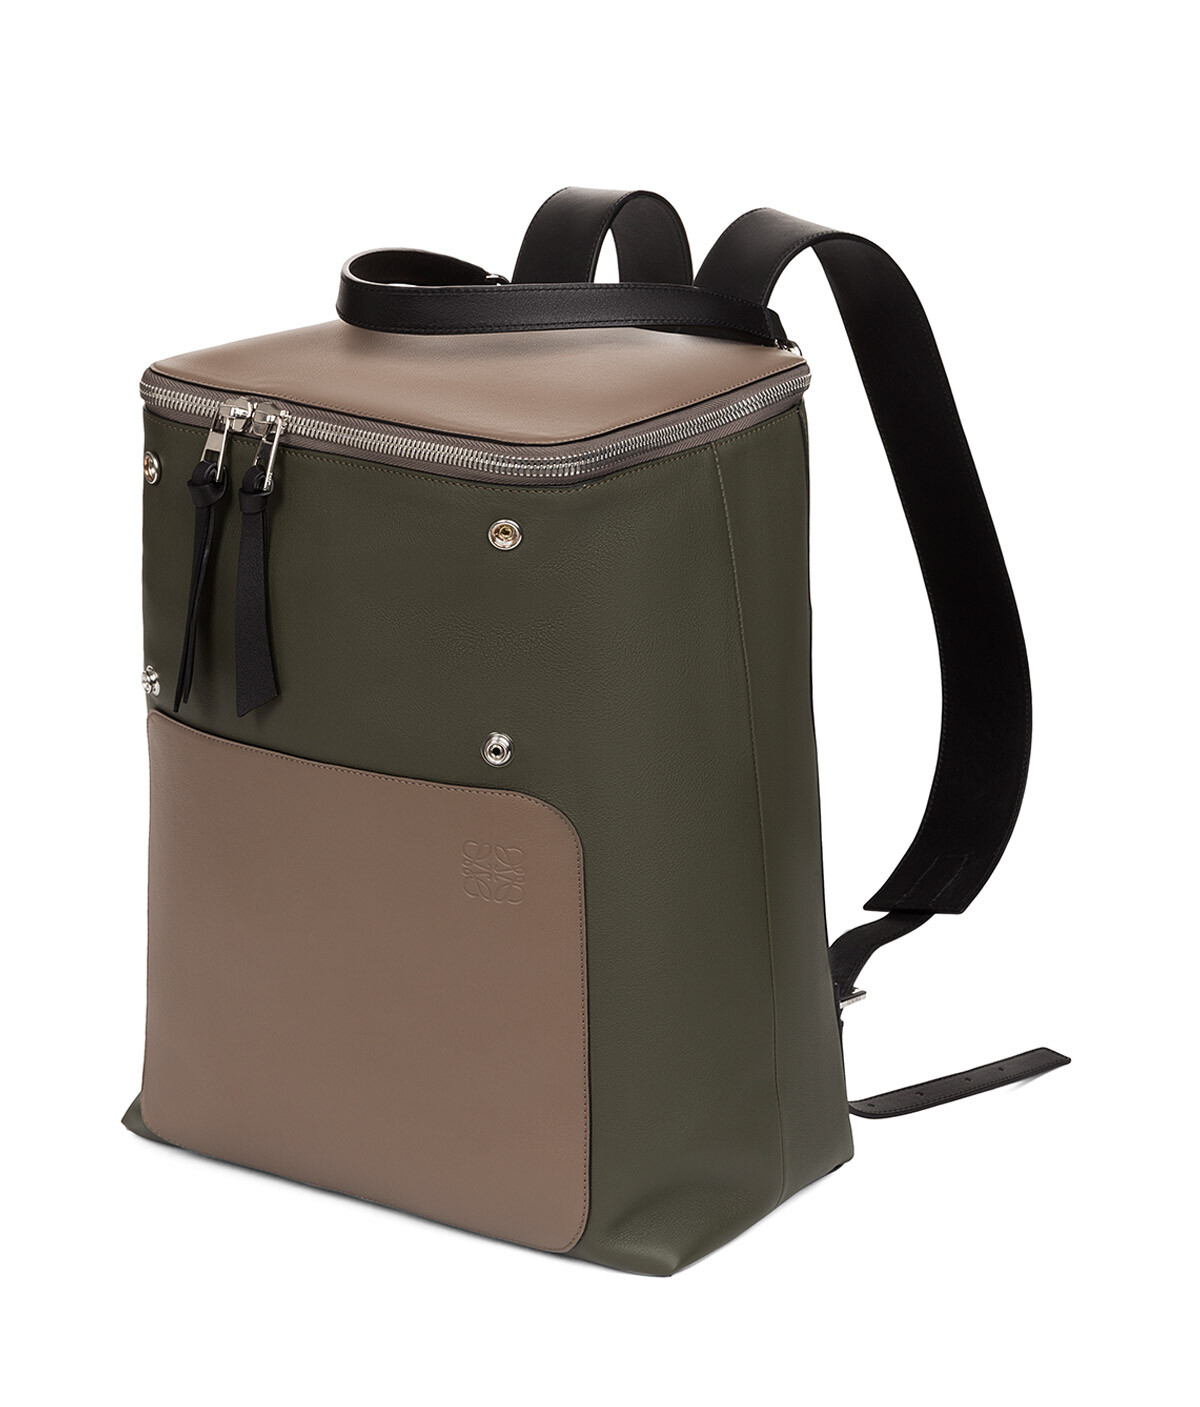 LOEWE ゴヤ バックパック Dark Taupe/Military Green/Bl front